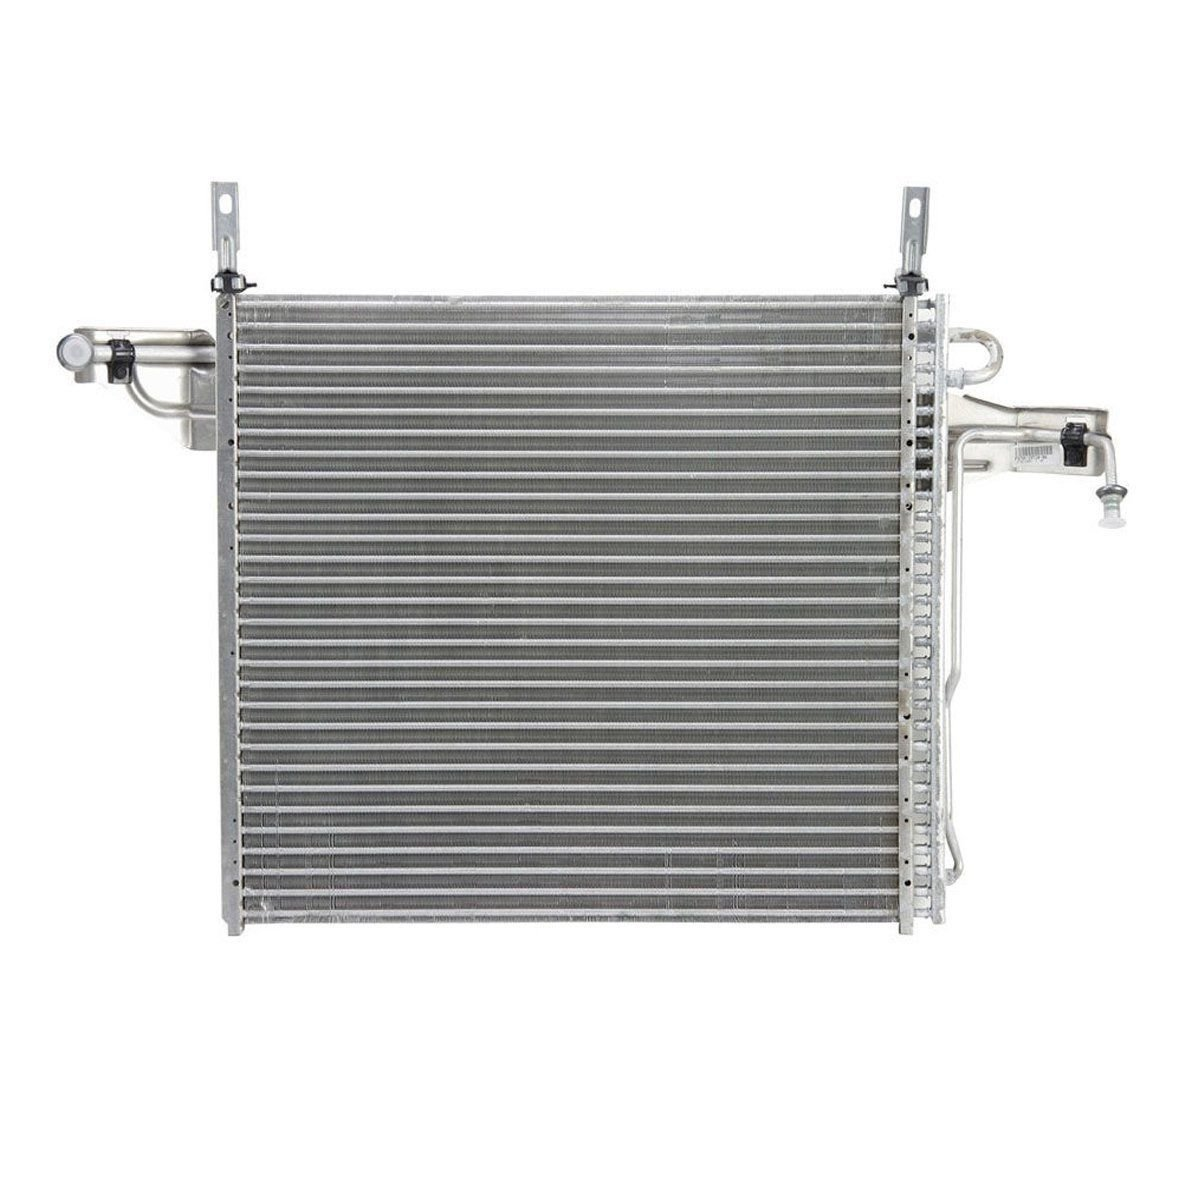 SCITOO AC A/C Condenser 4628 for Ford Explorer Expedition Limited Eddie Bauer XL XLT Sport Utility 4/2-Door 4.0L 1995-1997